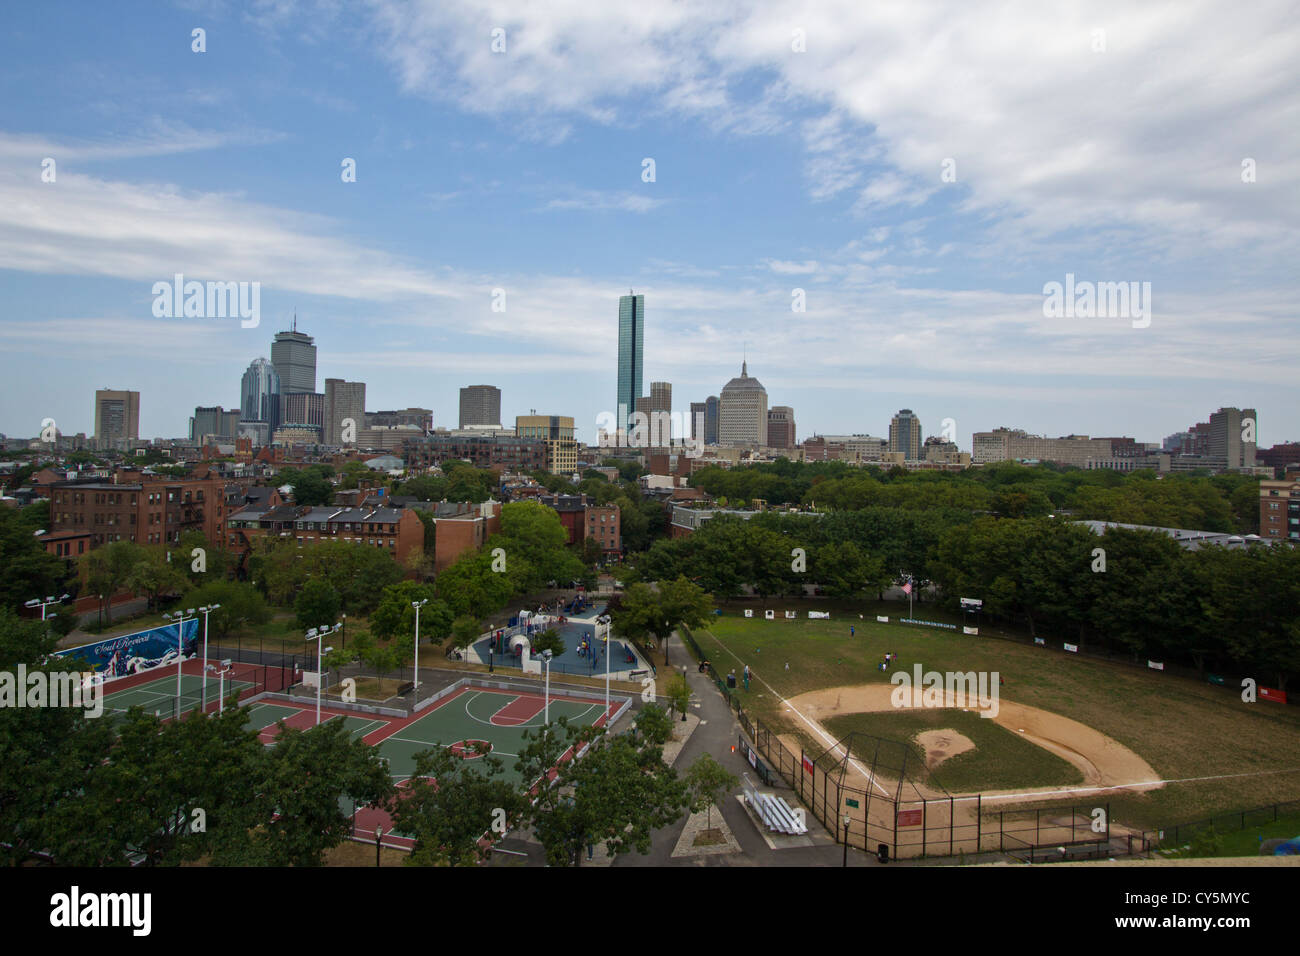 Boston skyline avec piscine en plein air de basket-ball et de baseball dans l'avant-plan Photo Stock